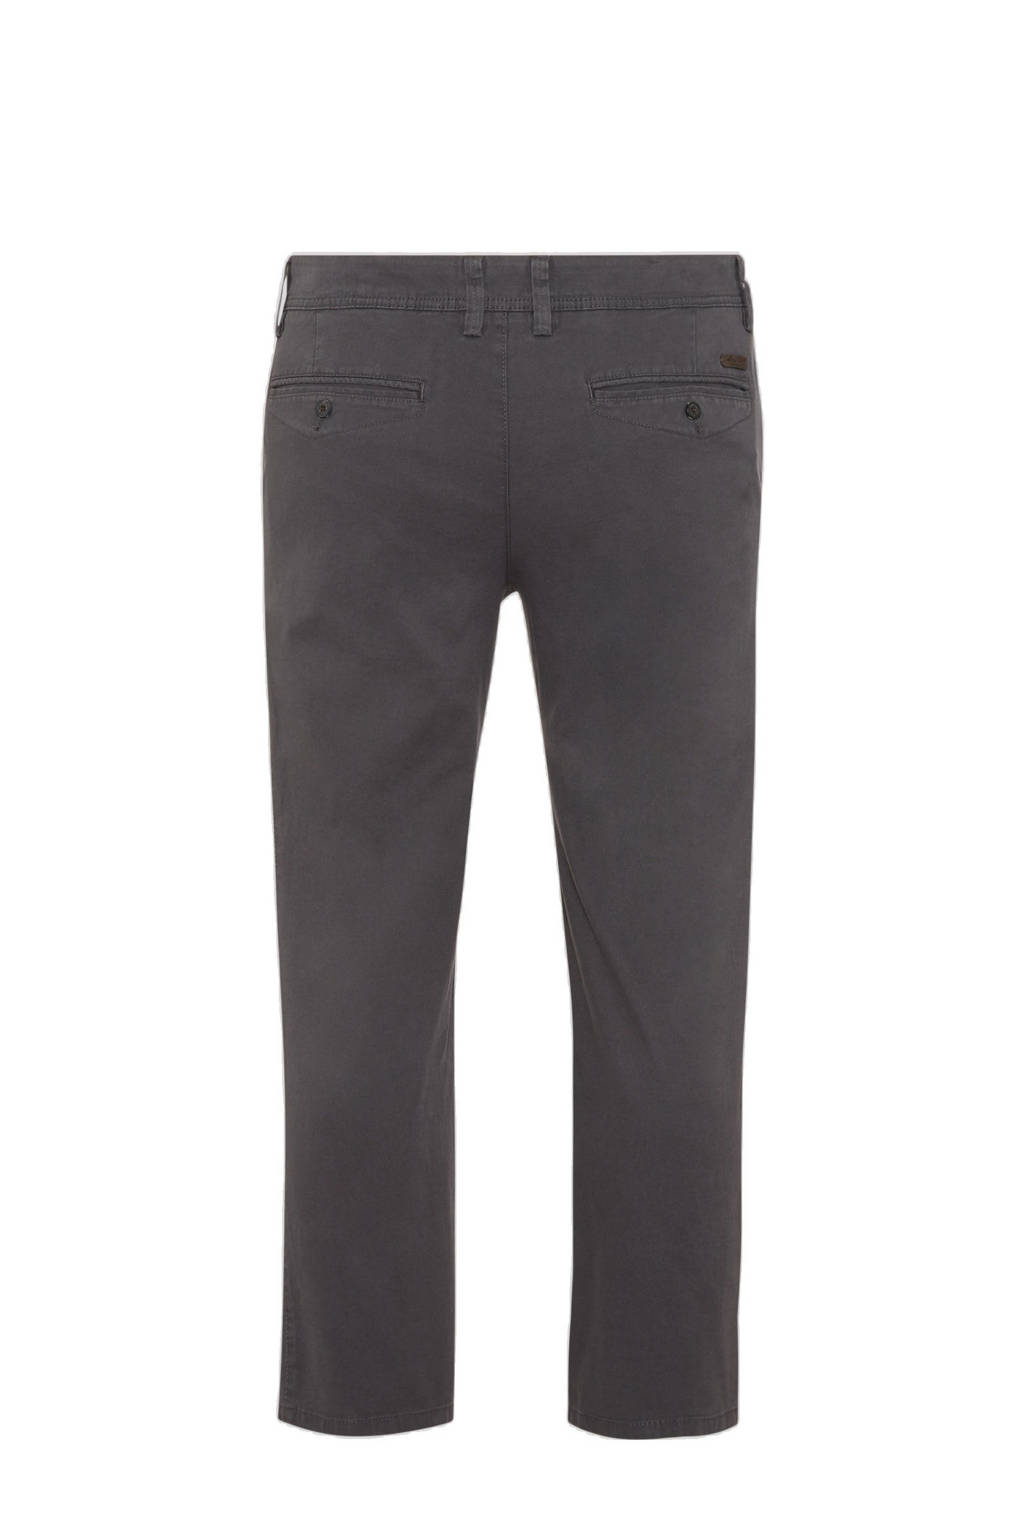 C&A XL regular fit chino antraciet, Antraciet